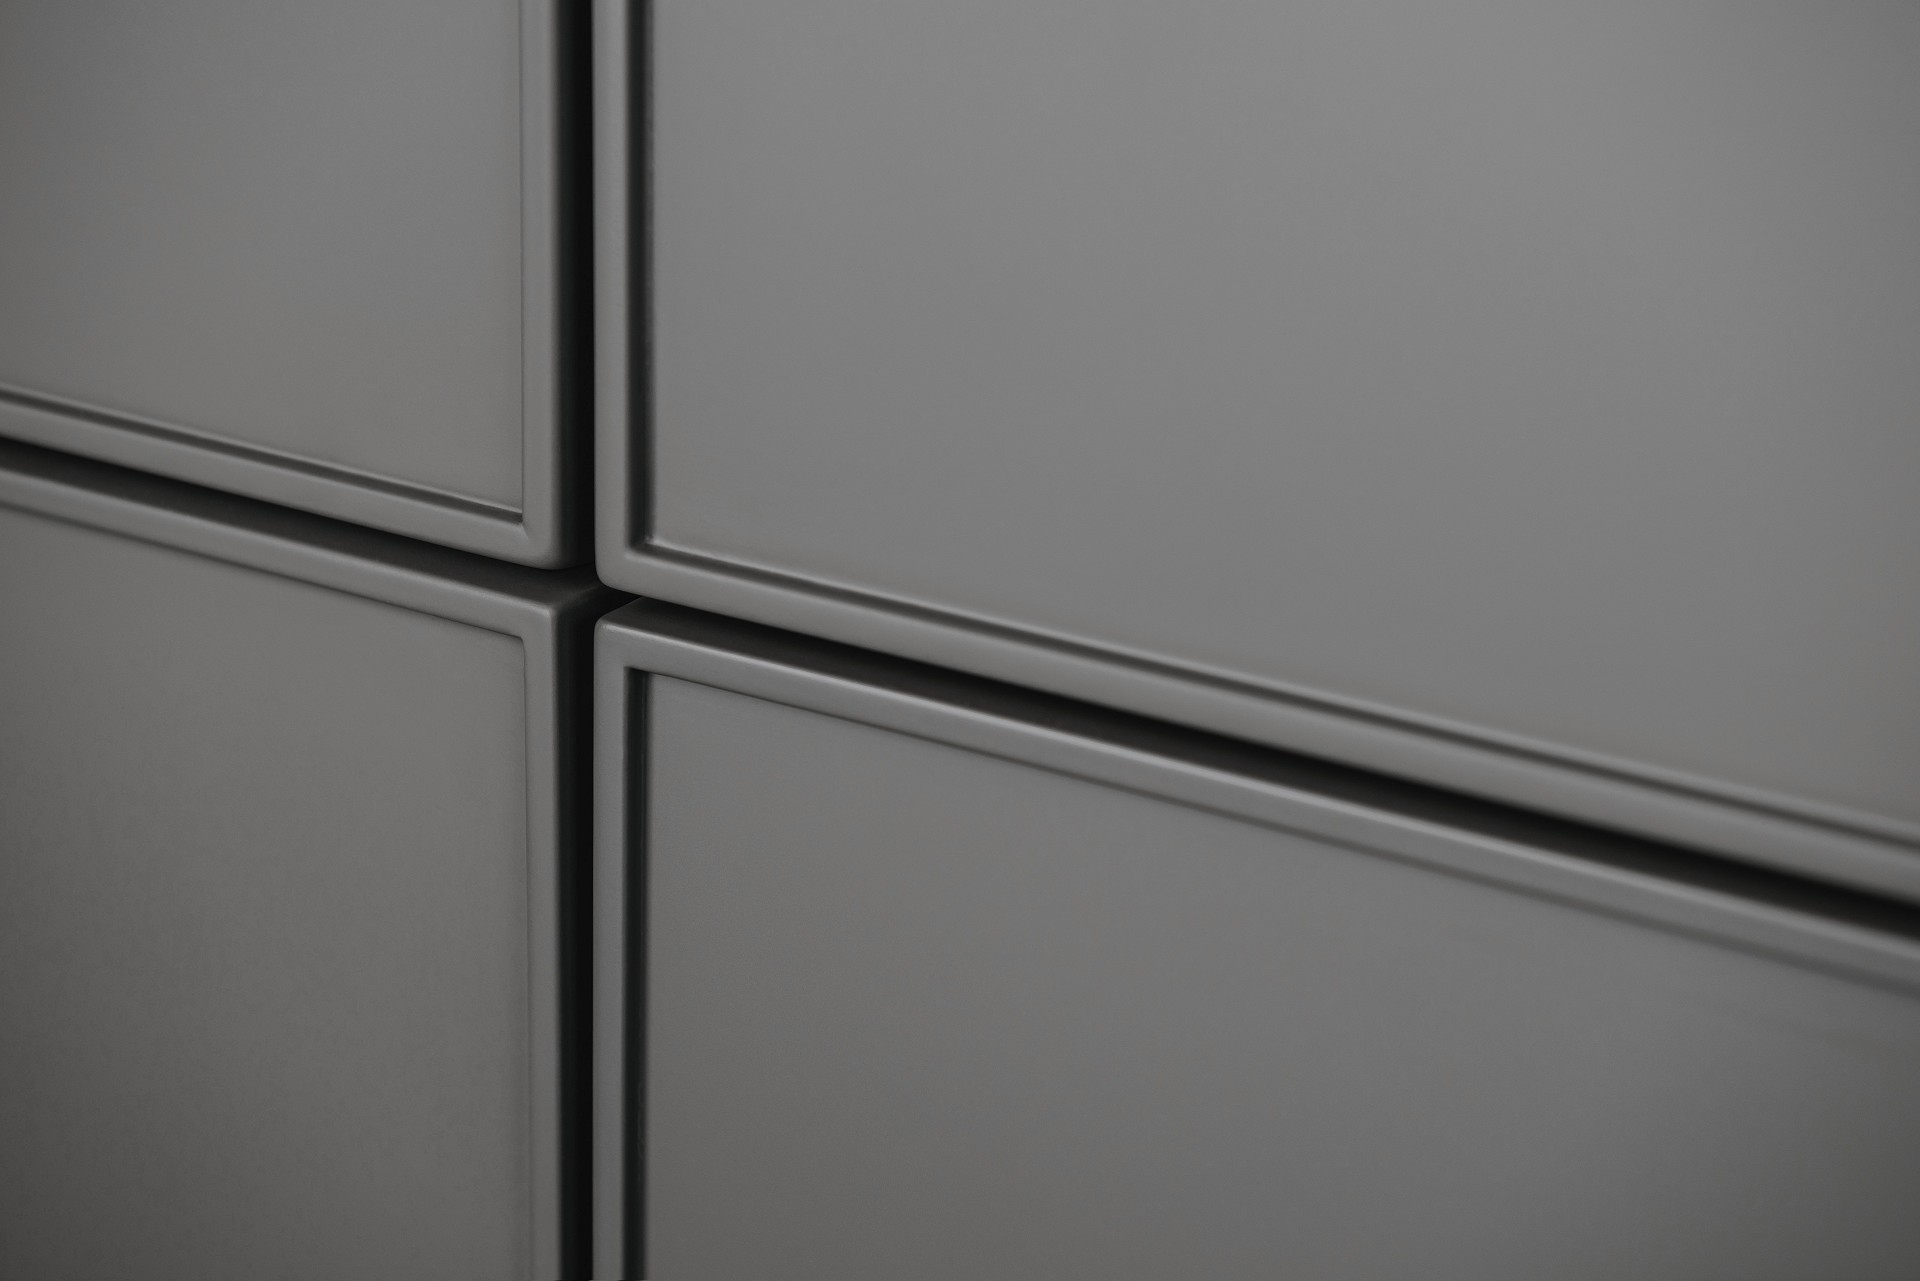 SieMatic Pure SE 3003 R with 6.5 mm edged door fronts in matte lacquer for timelessly elegant kitchen design